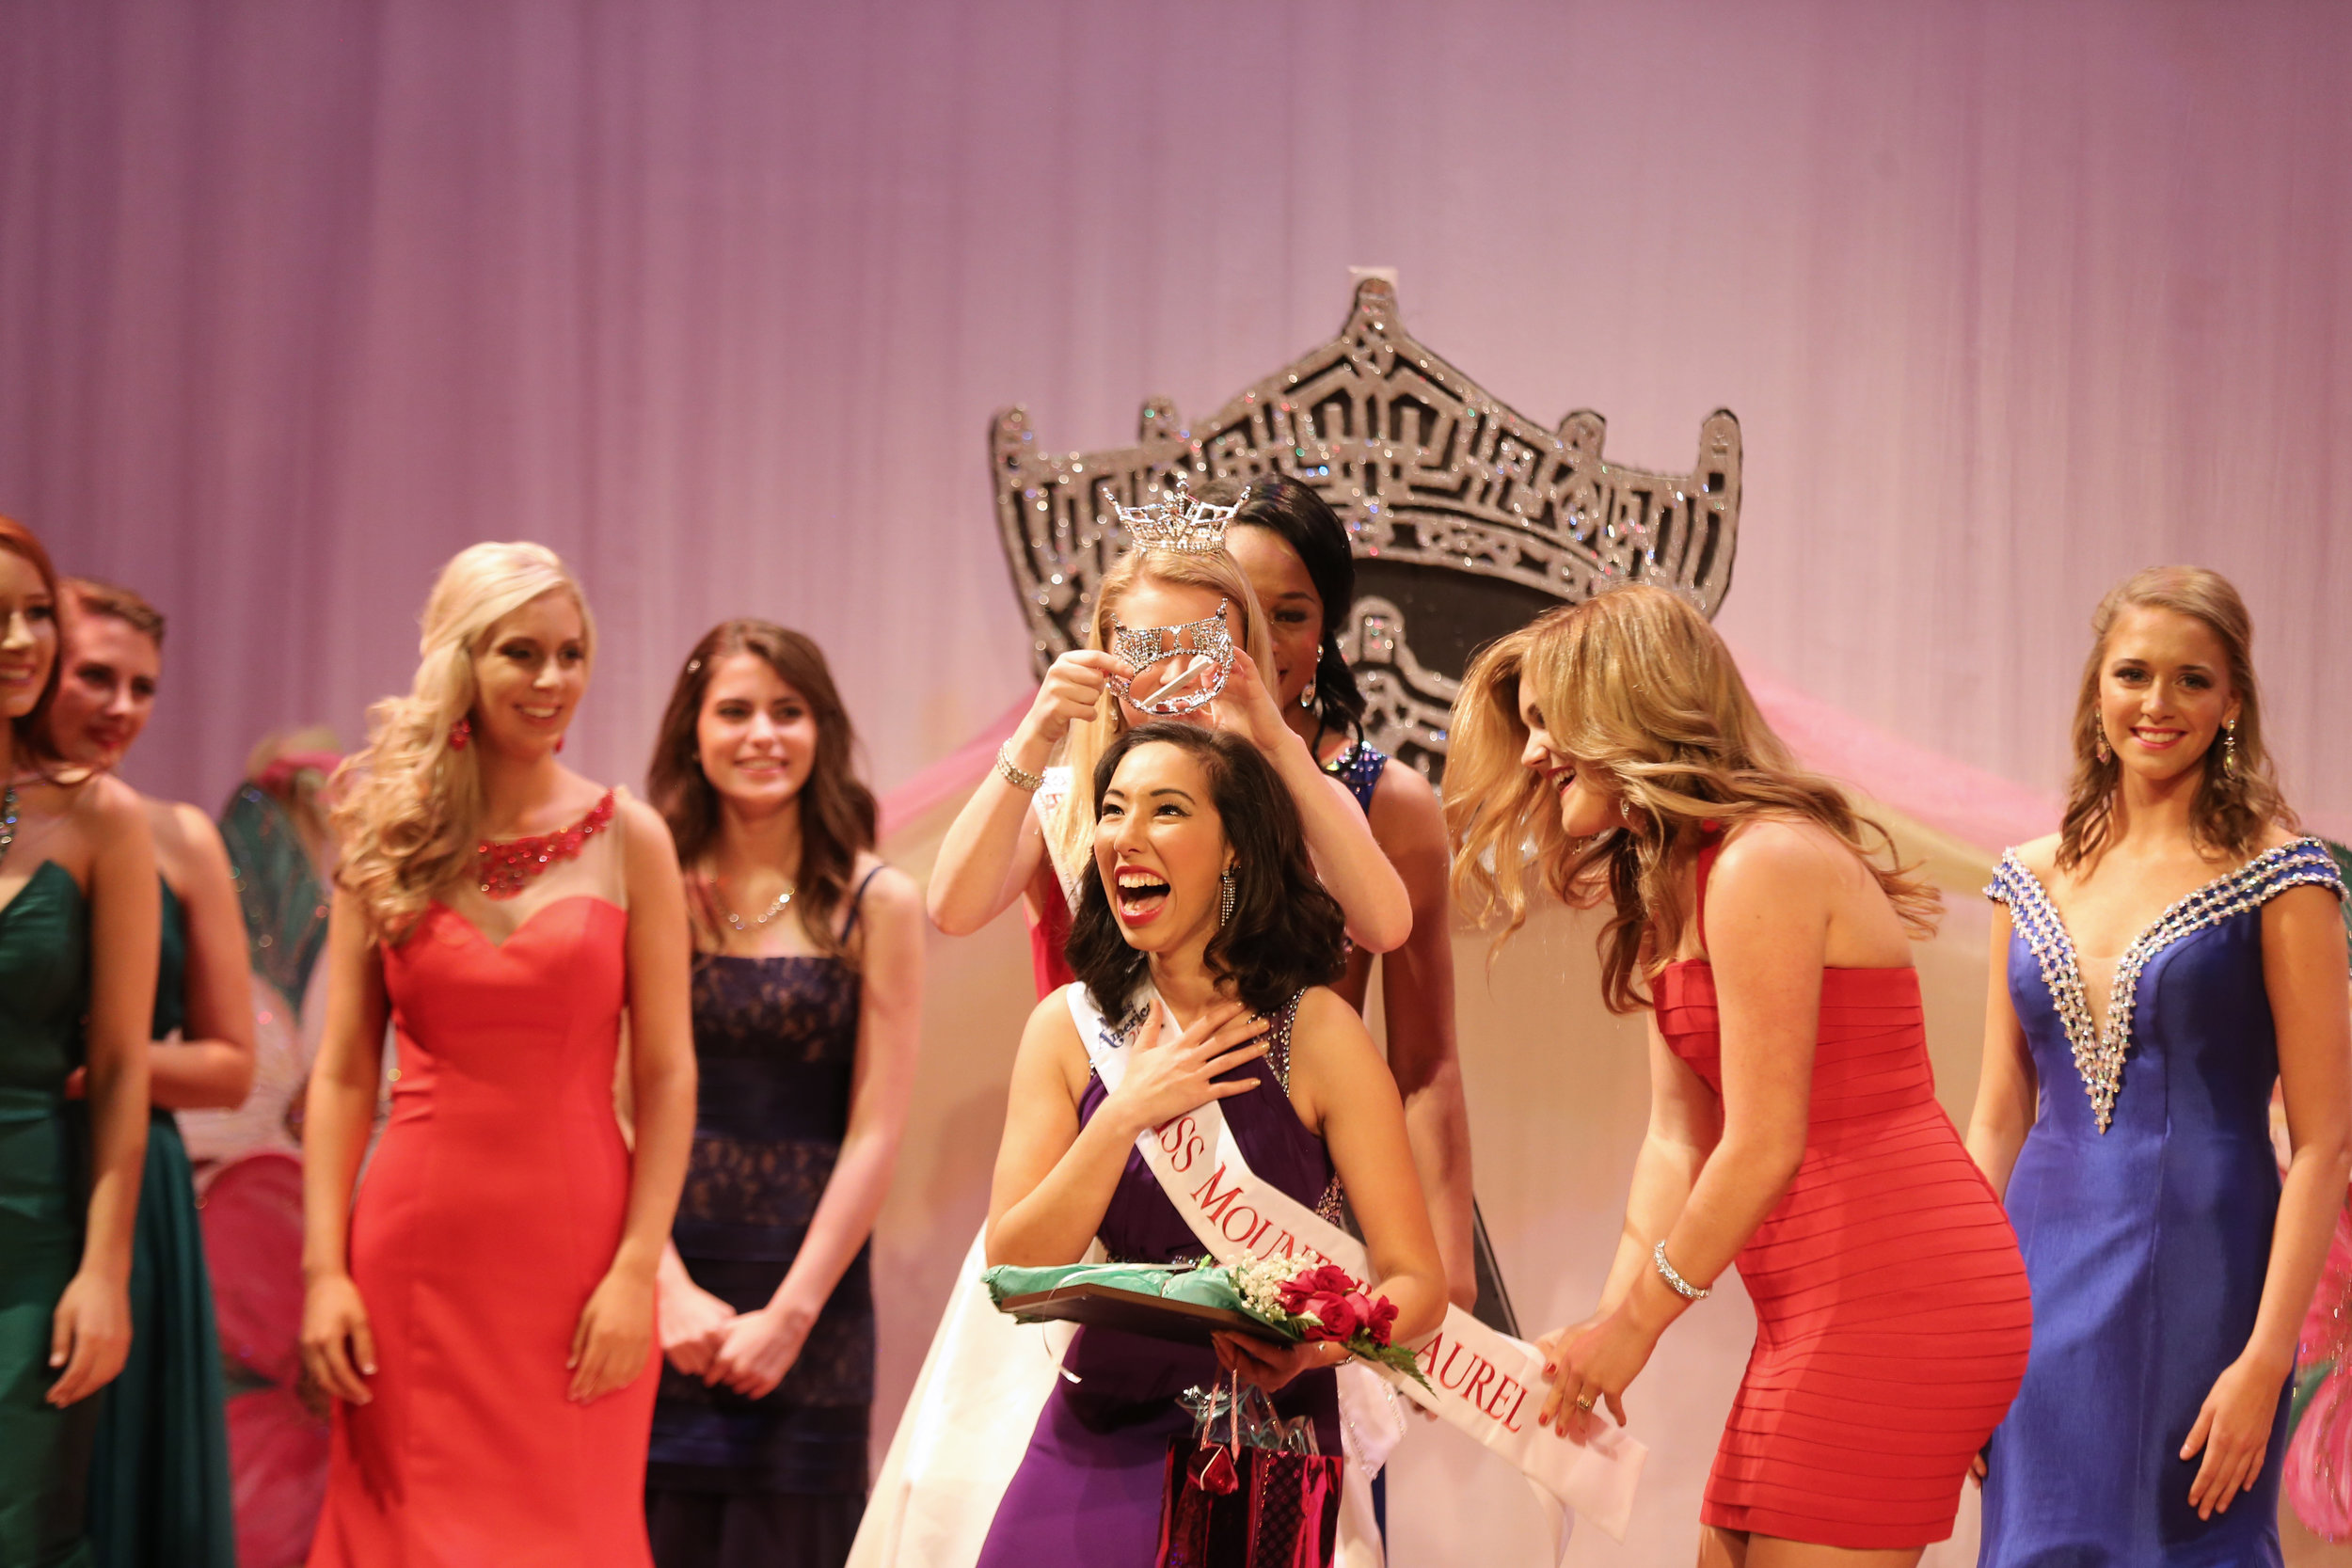 Crowning at the Miss Mountain Laurel 2017 Pageant. Photo by Kimberly Needles.